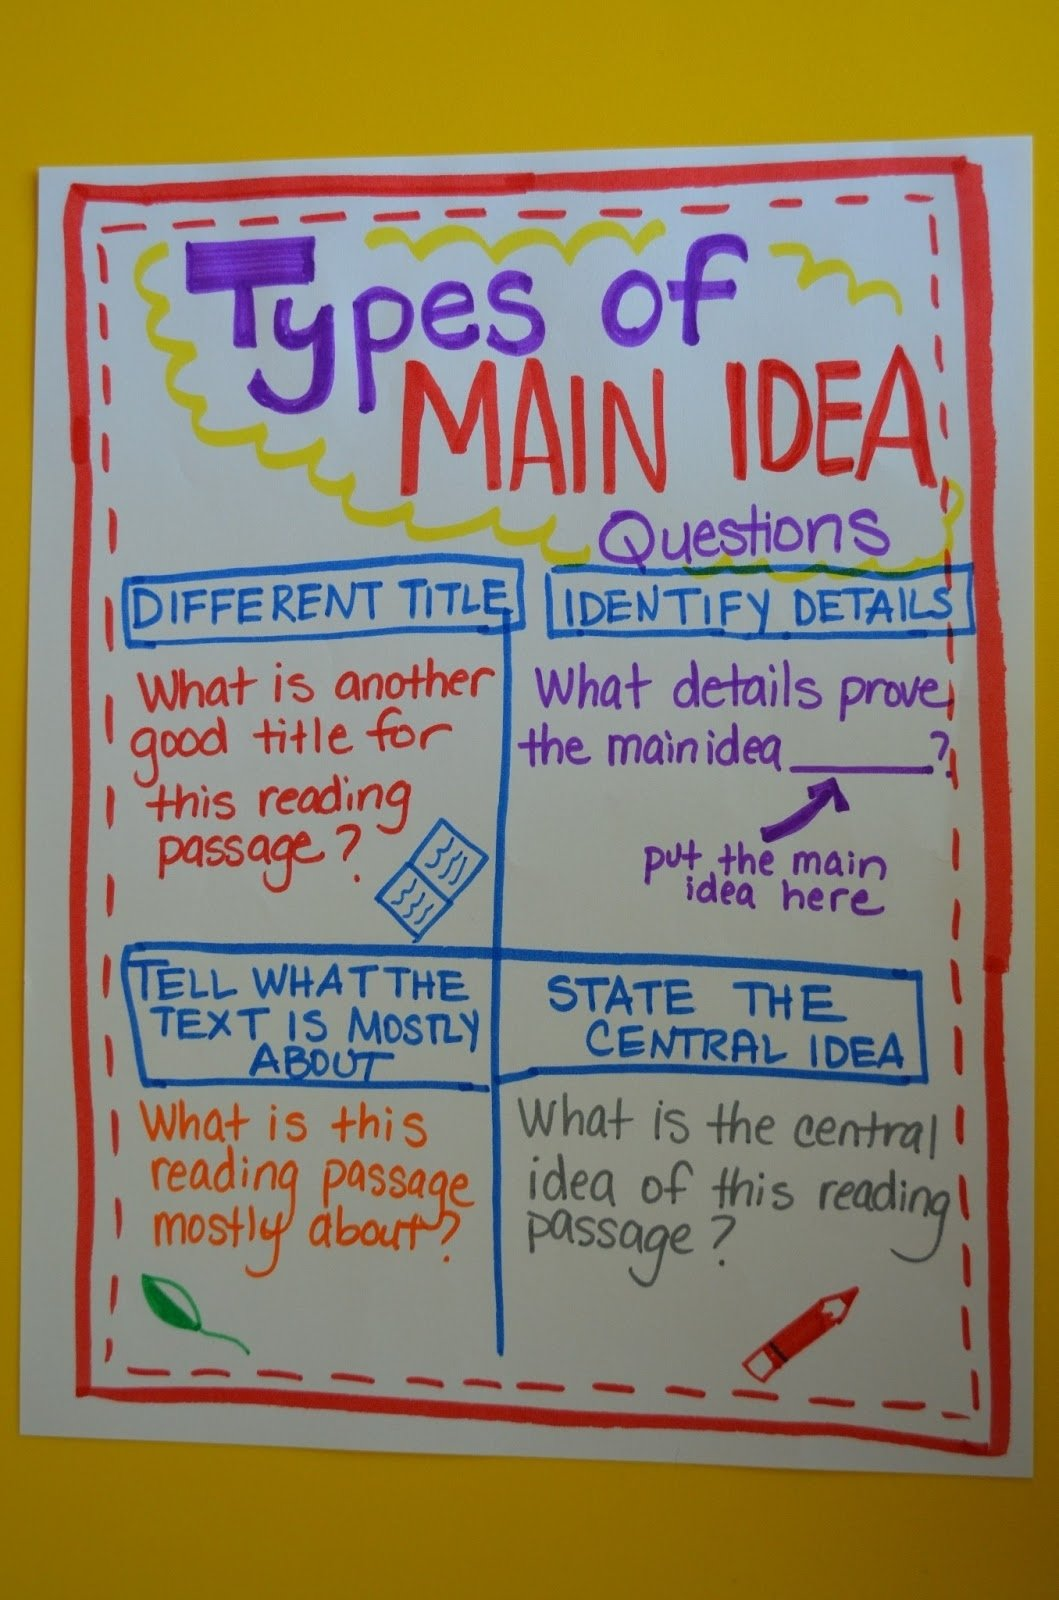 10 Lovable Main Idea Practice 4Th Grade literacy math ideas different types of main idea questions 1 2020